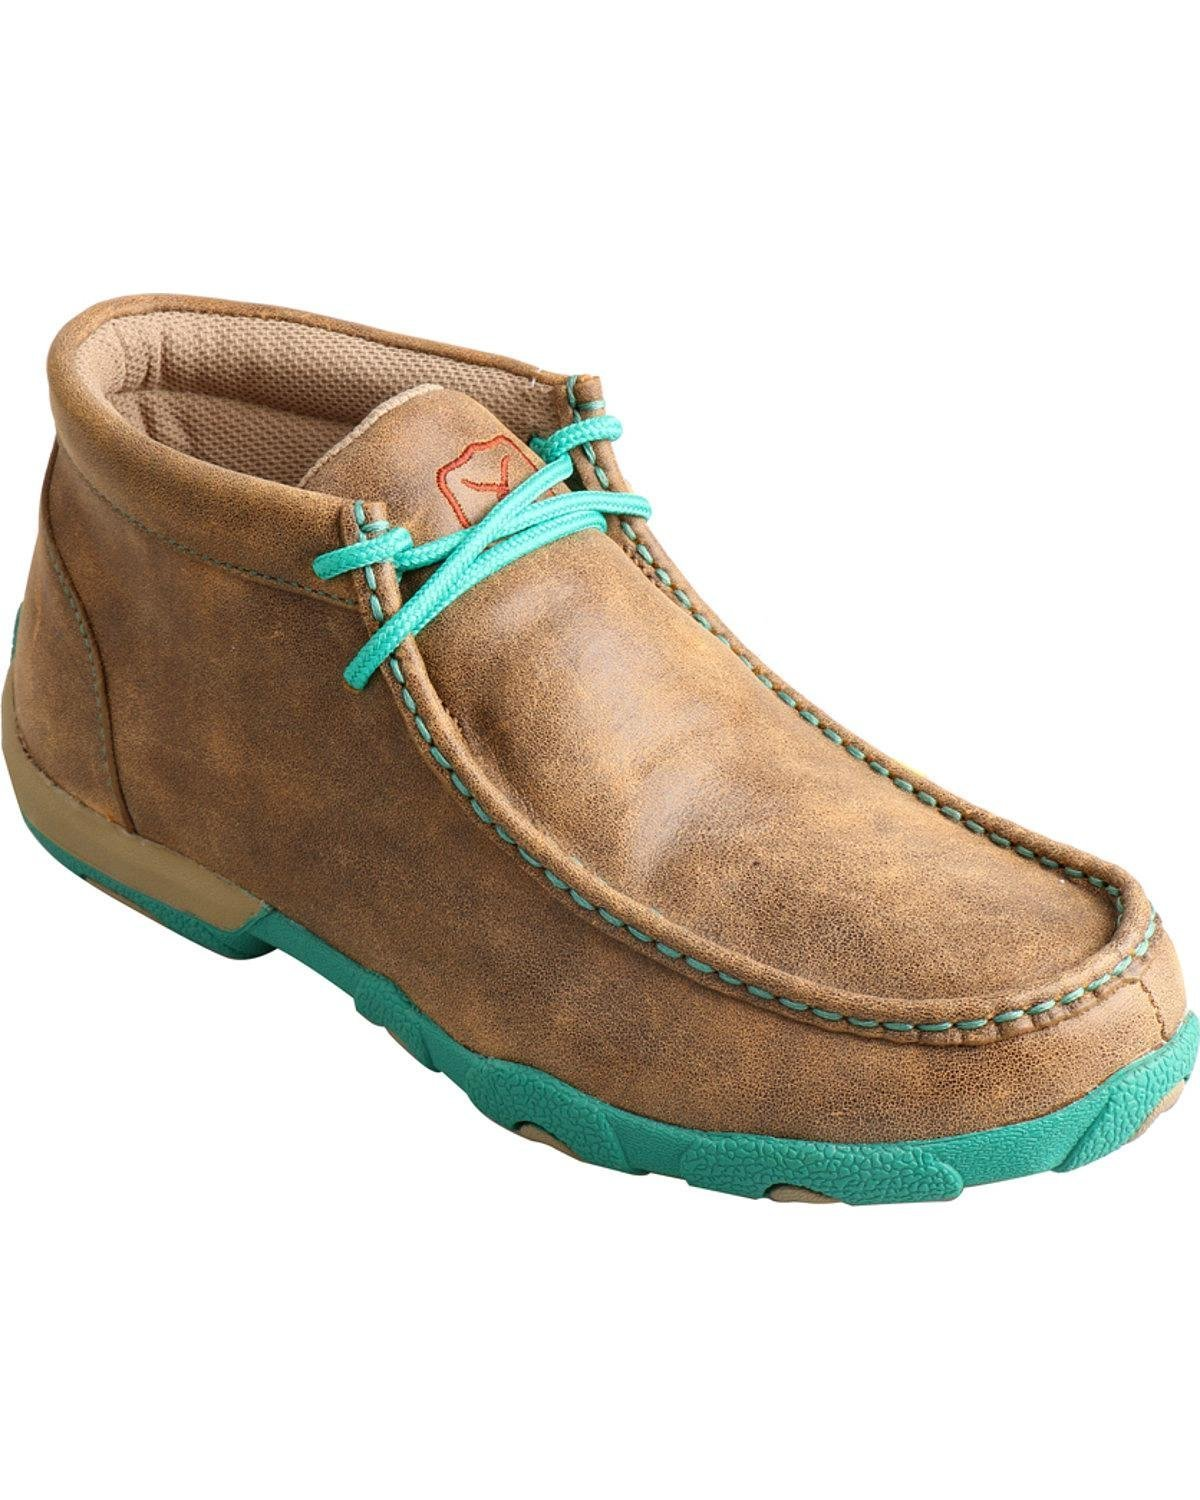 Twisted X Ladies Turquoise Lace Driving Mocs B01EU4MPP4 7.5 B(M) US|Bomber